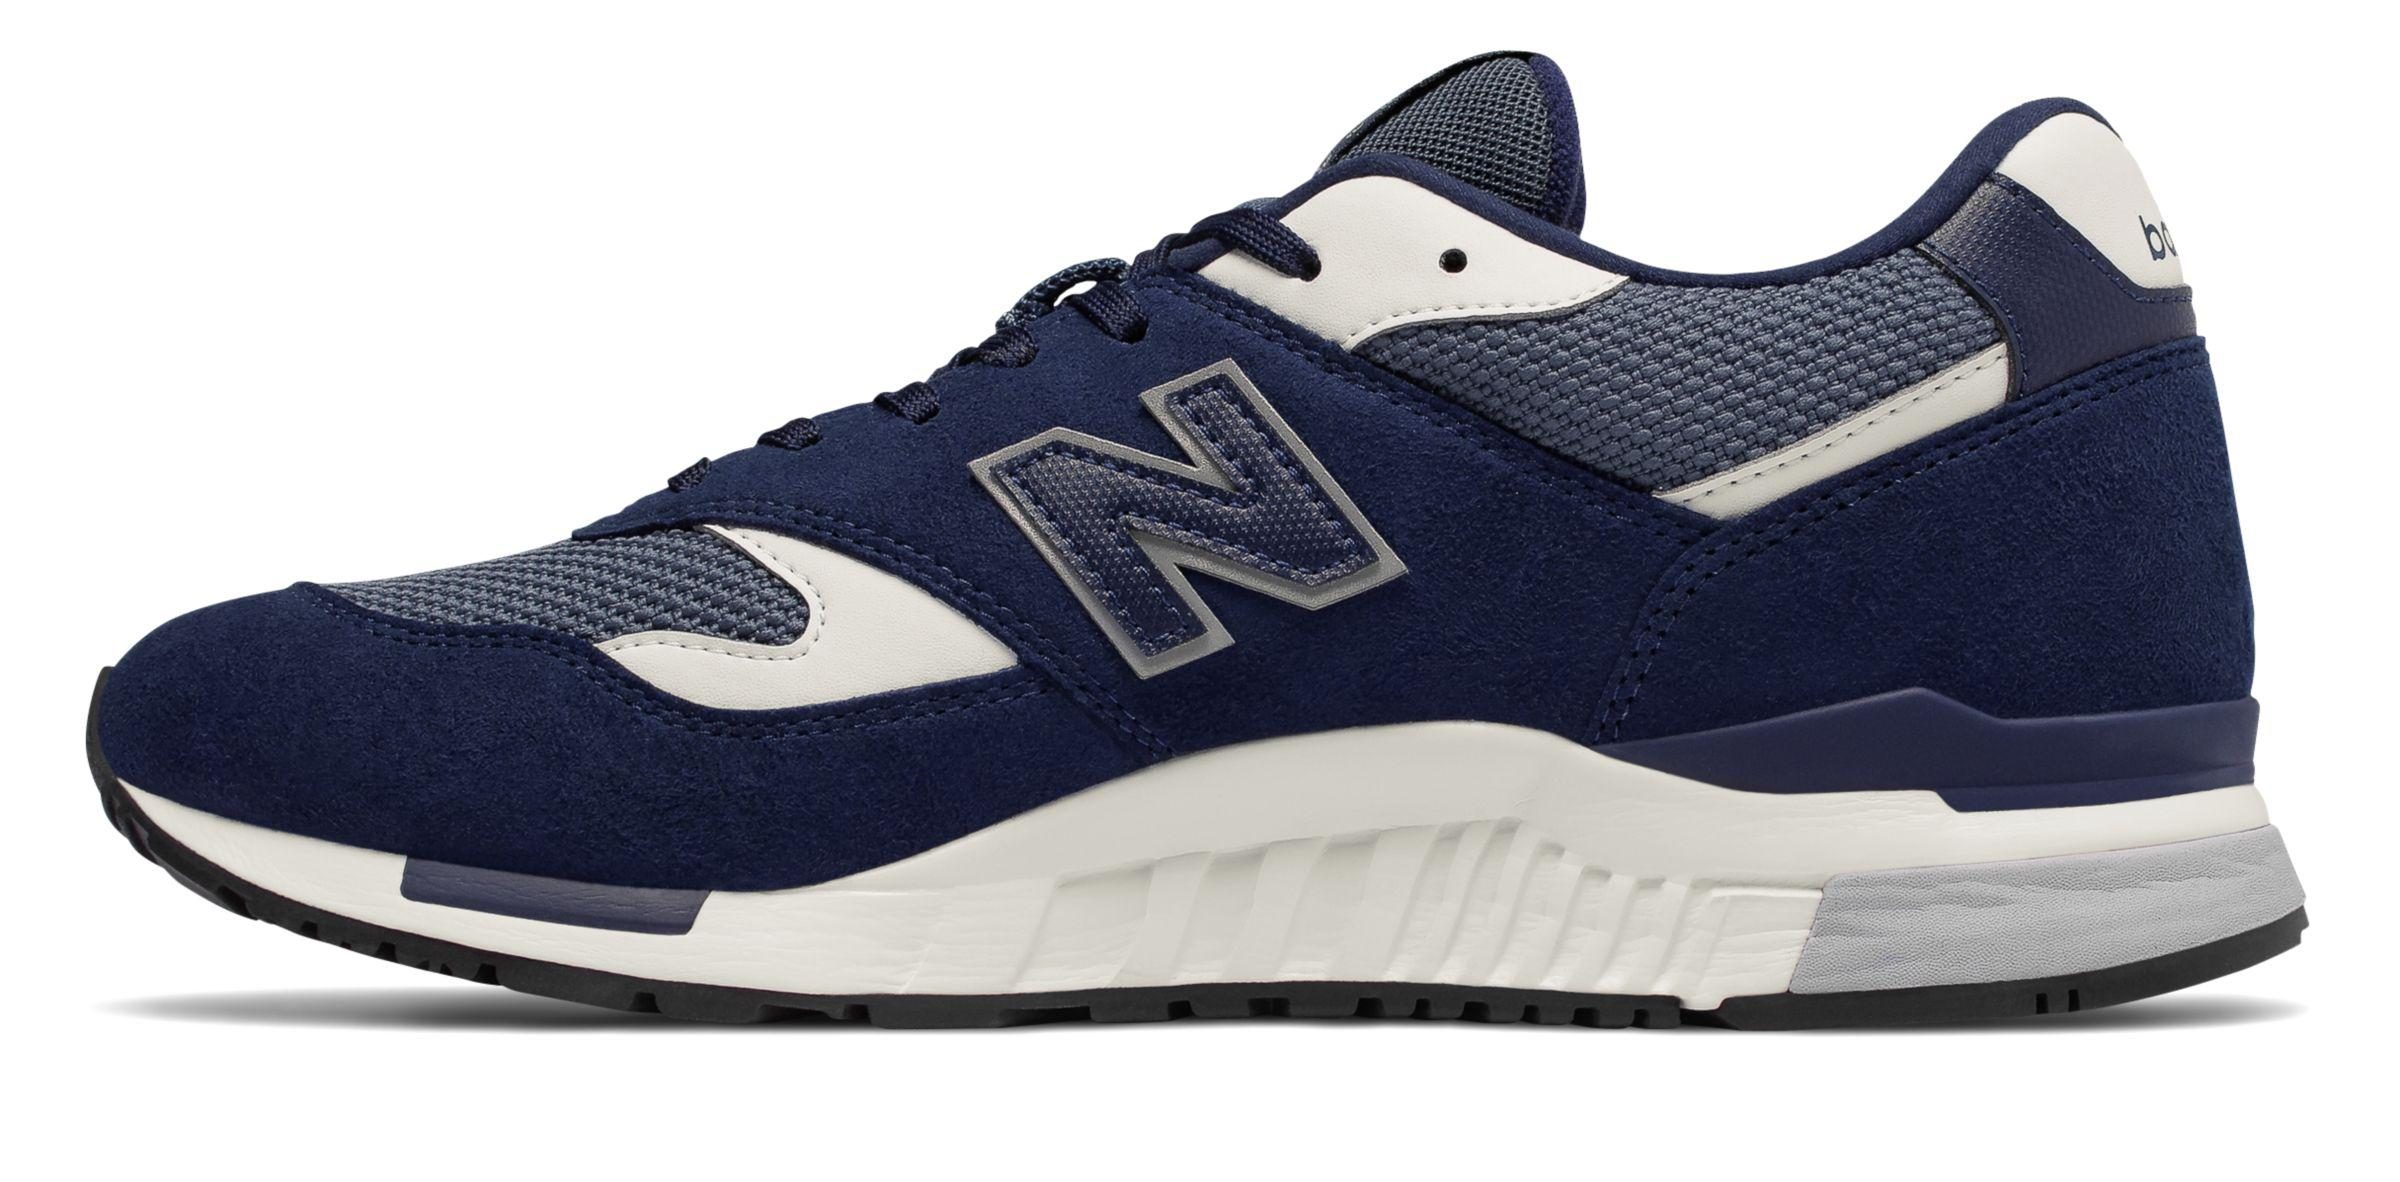 New Balance Suede 840 in Blue for Men - Lyst